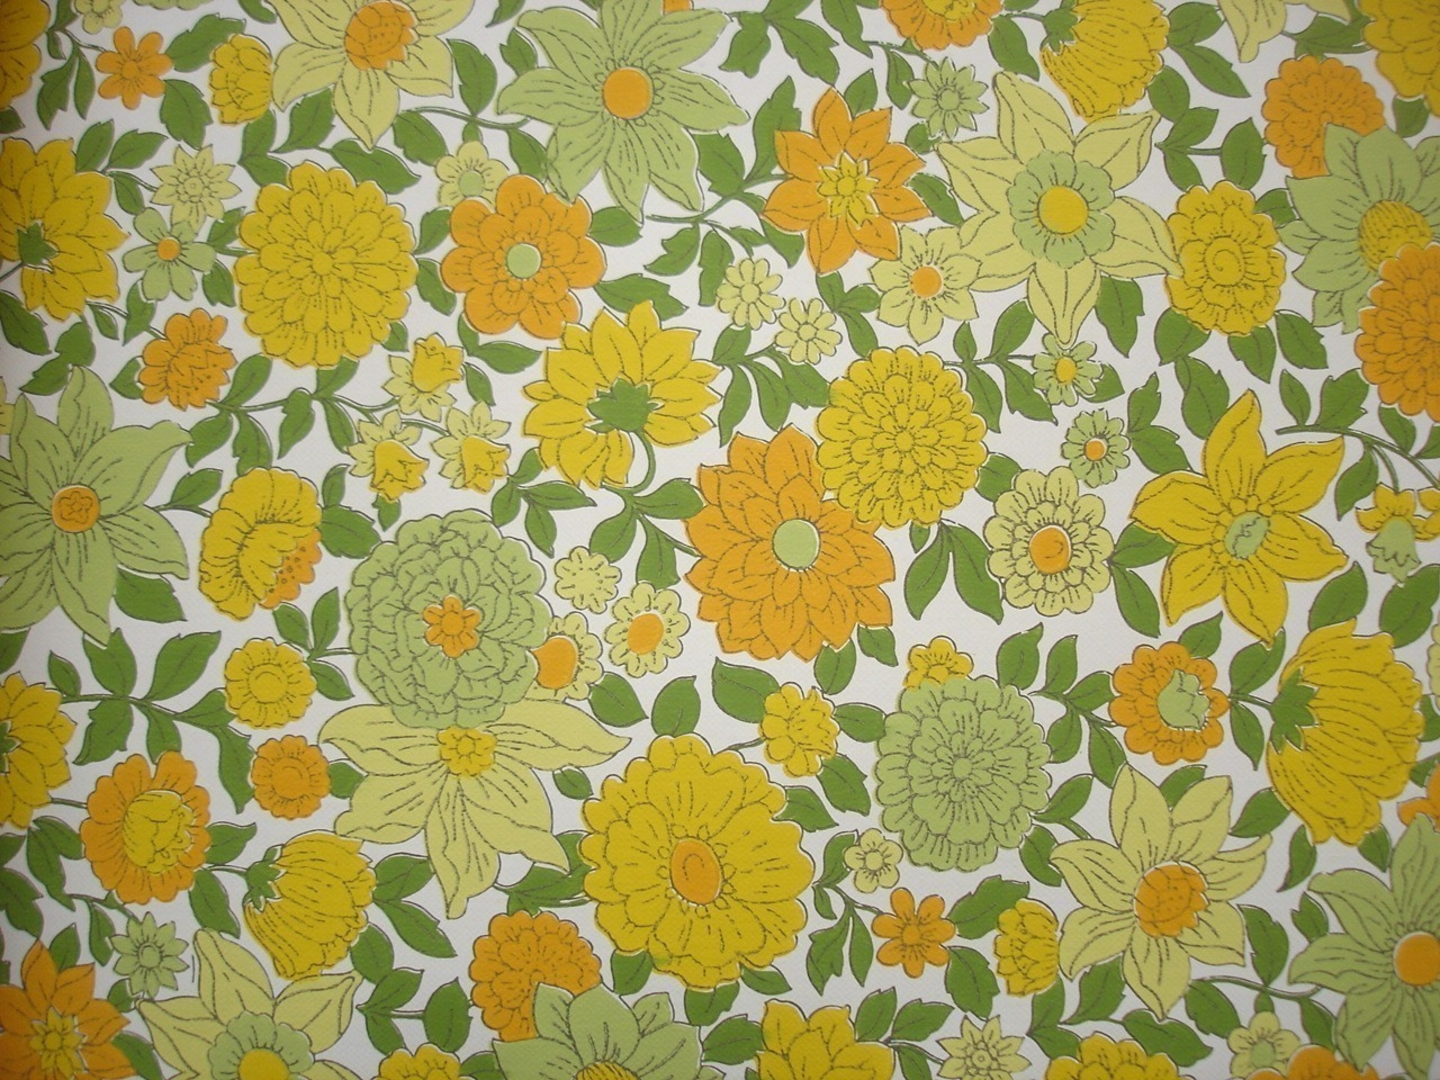 1920x1080-px-HD-Vintage-Yellow-Orange-And-Green-Floral-By-Thriftypyg-wallpaper-wp3601614